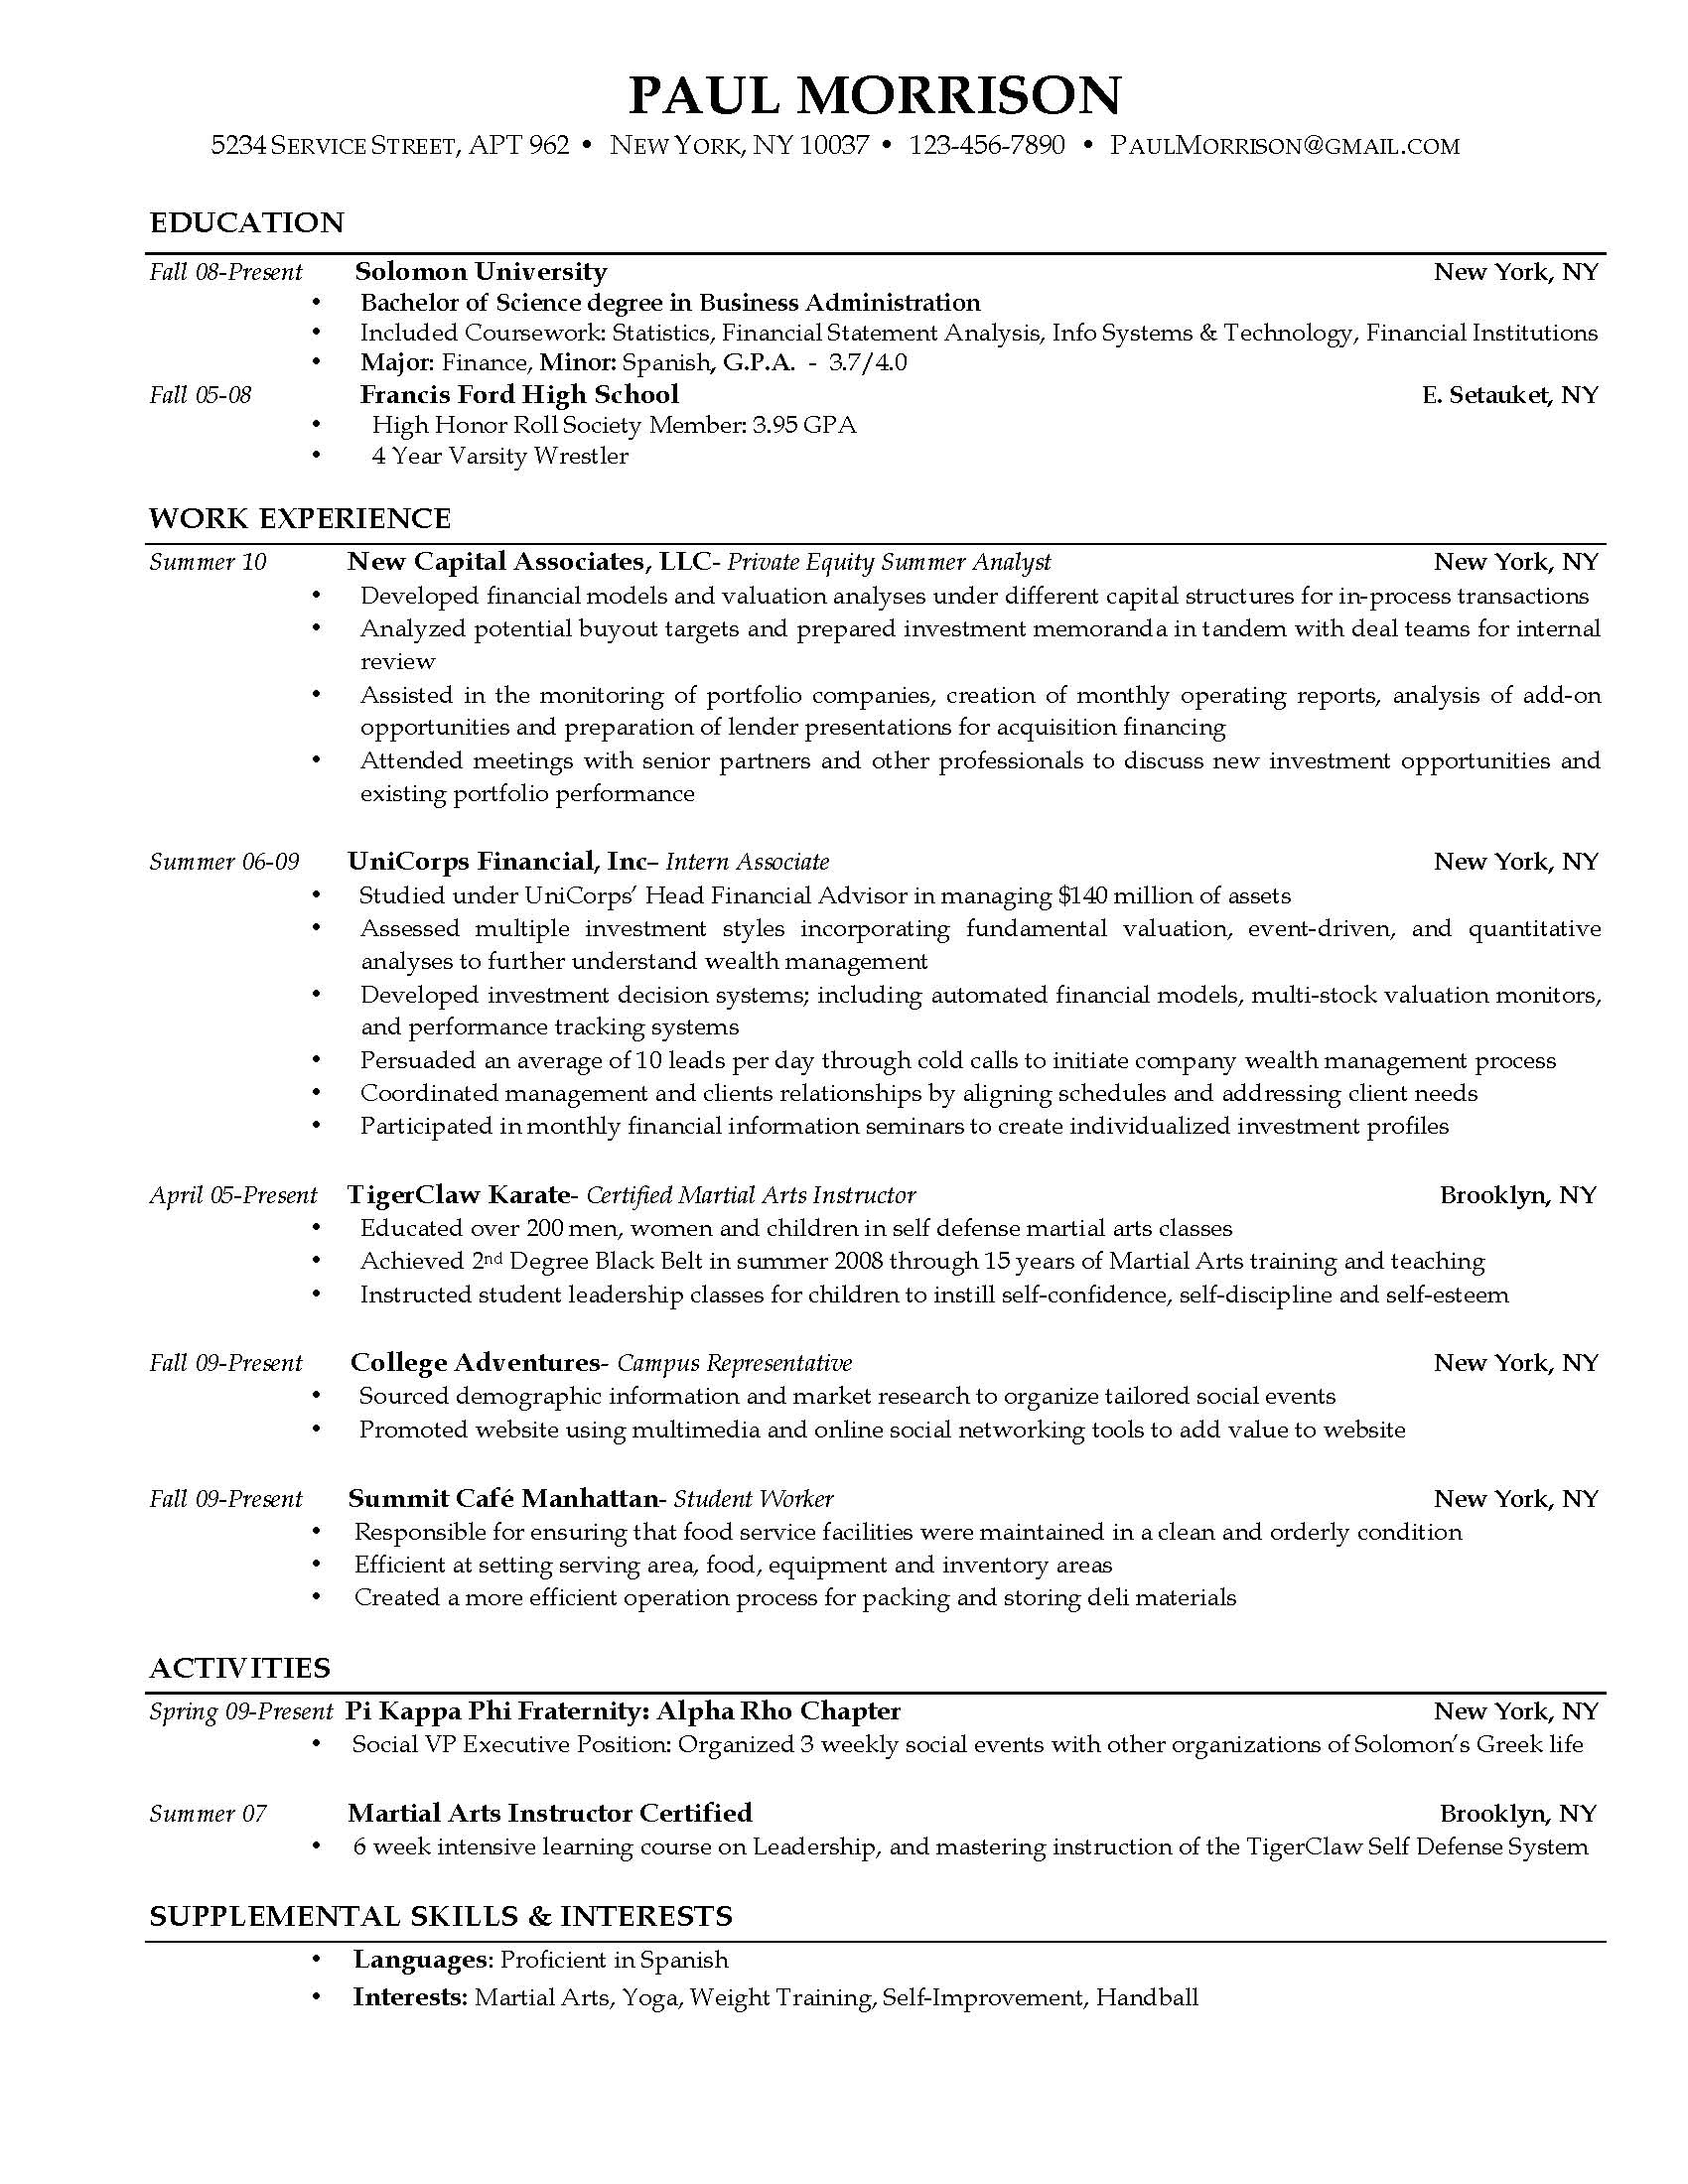 Resume Templates For Highschool Students Resume Writing For High